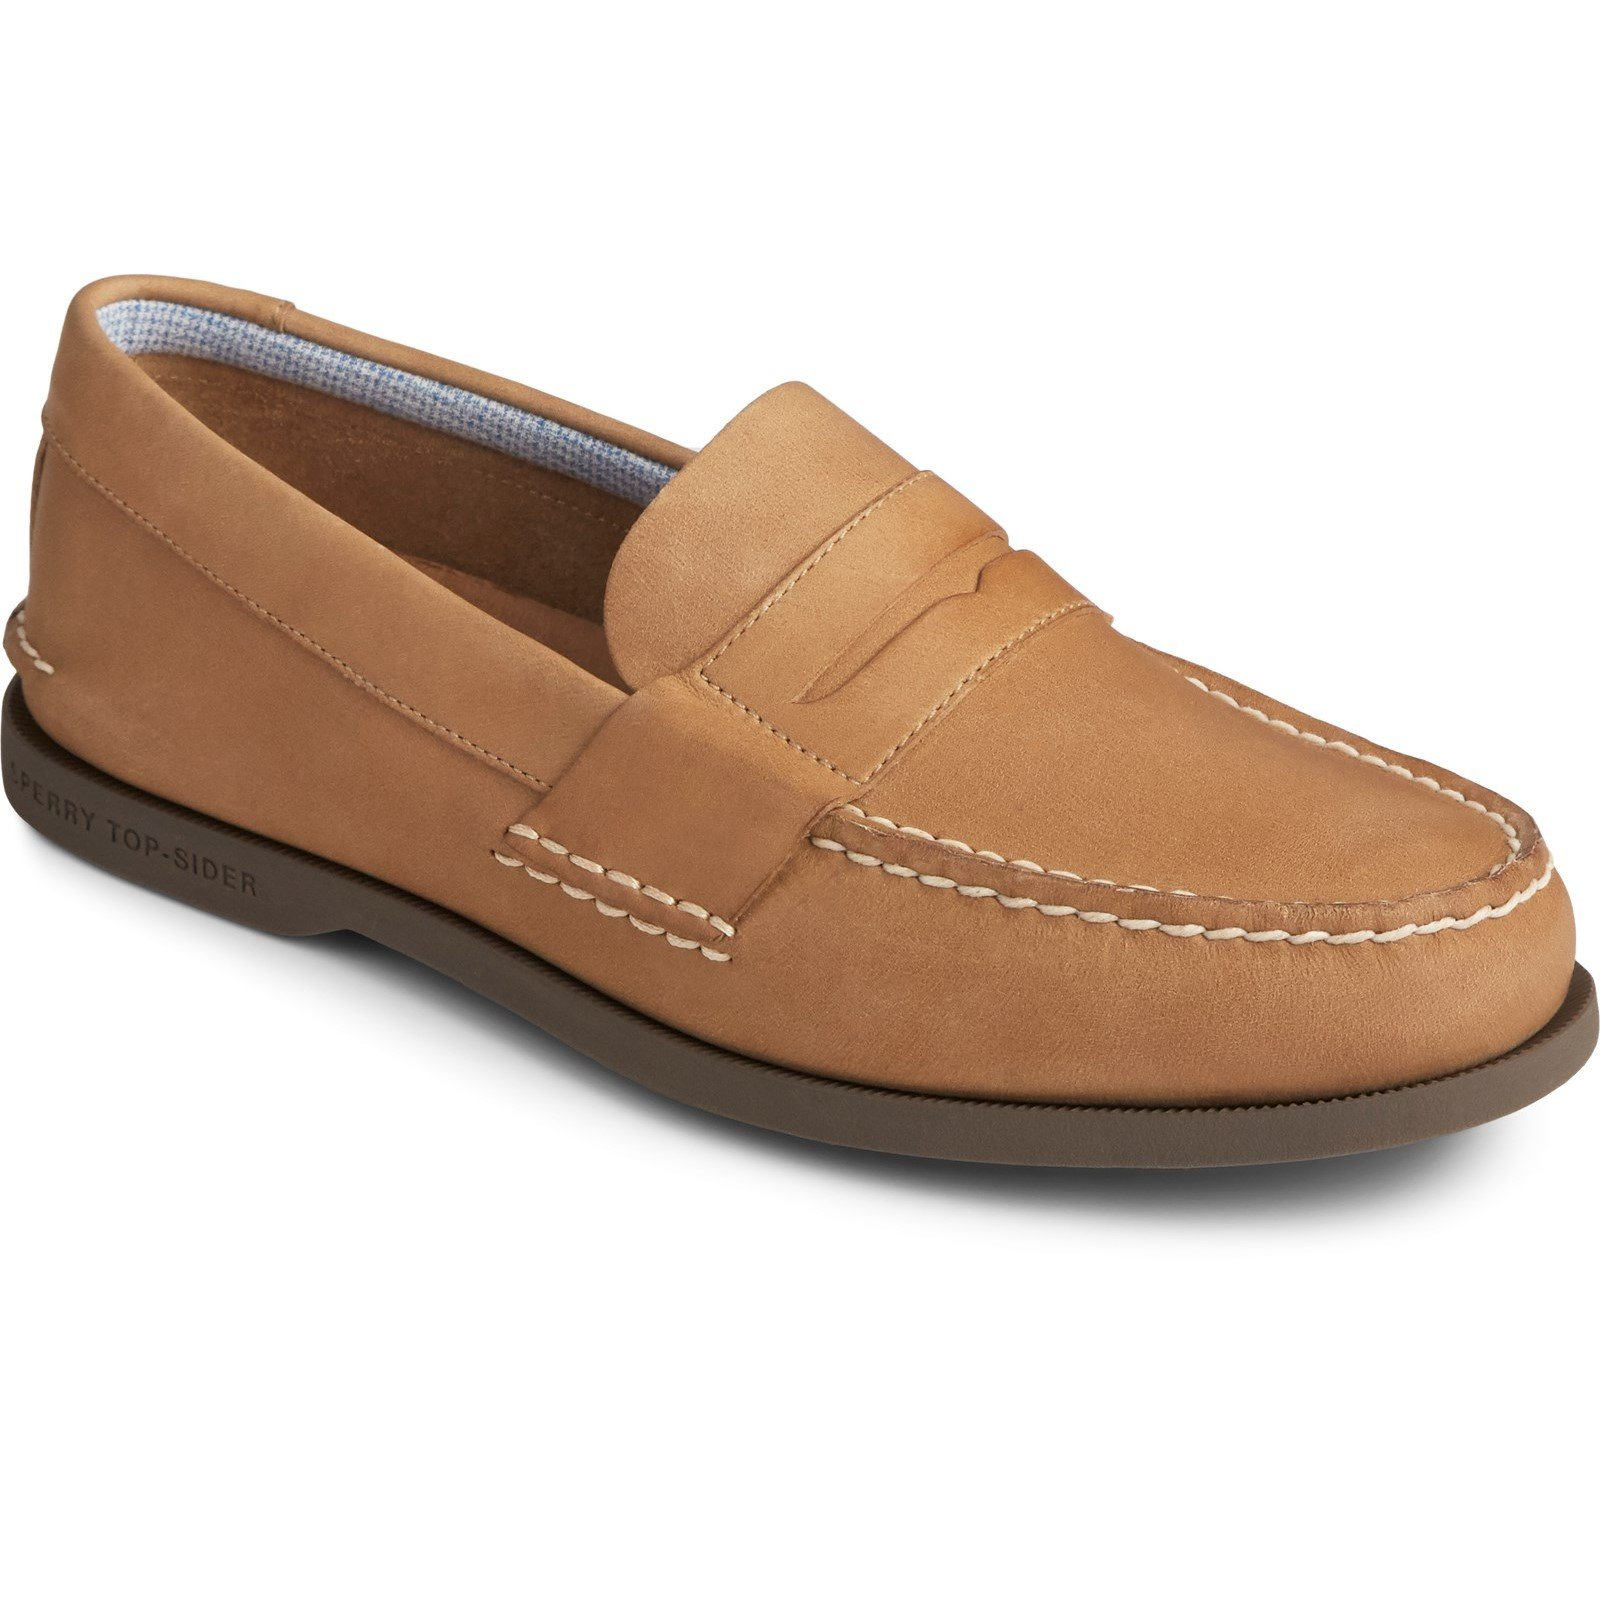 Sperry Men's Authentic Original Penny Loafer Various Colours 31733 - Sahara 8